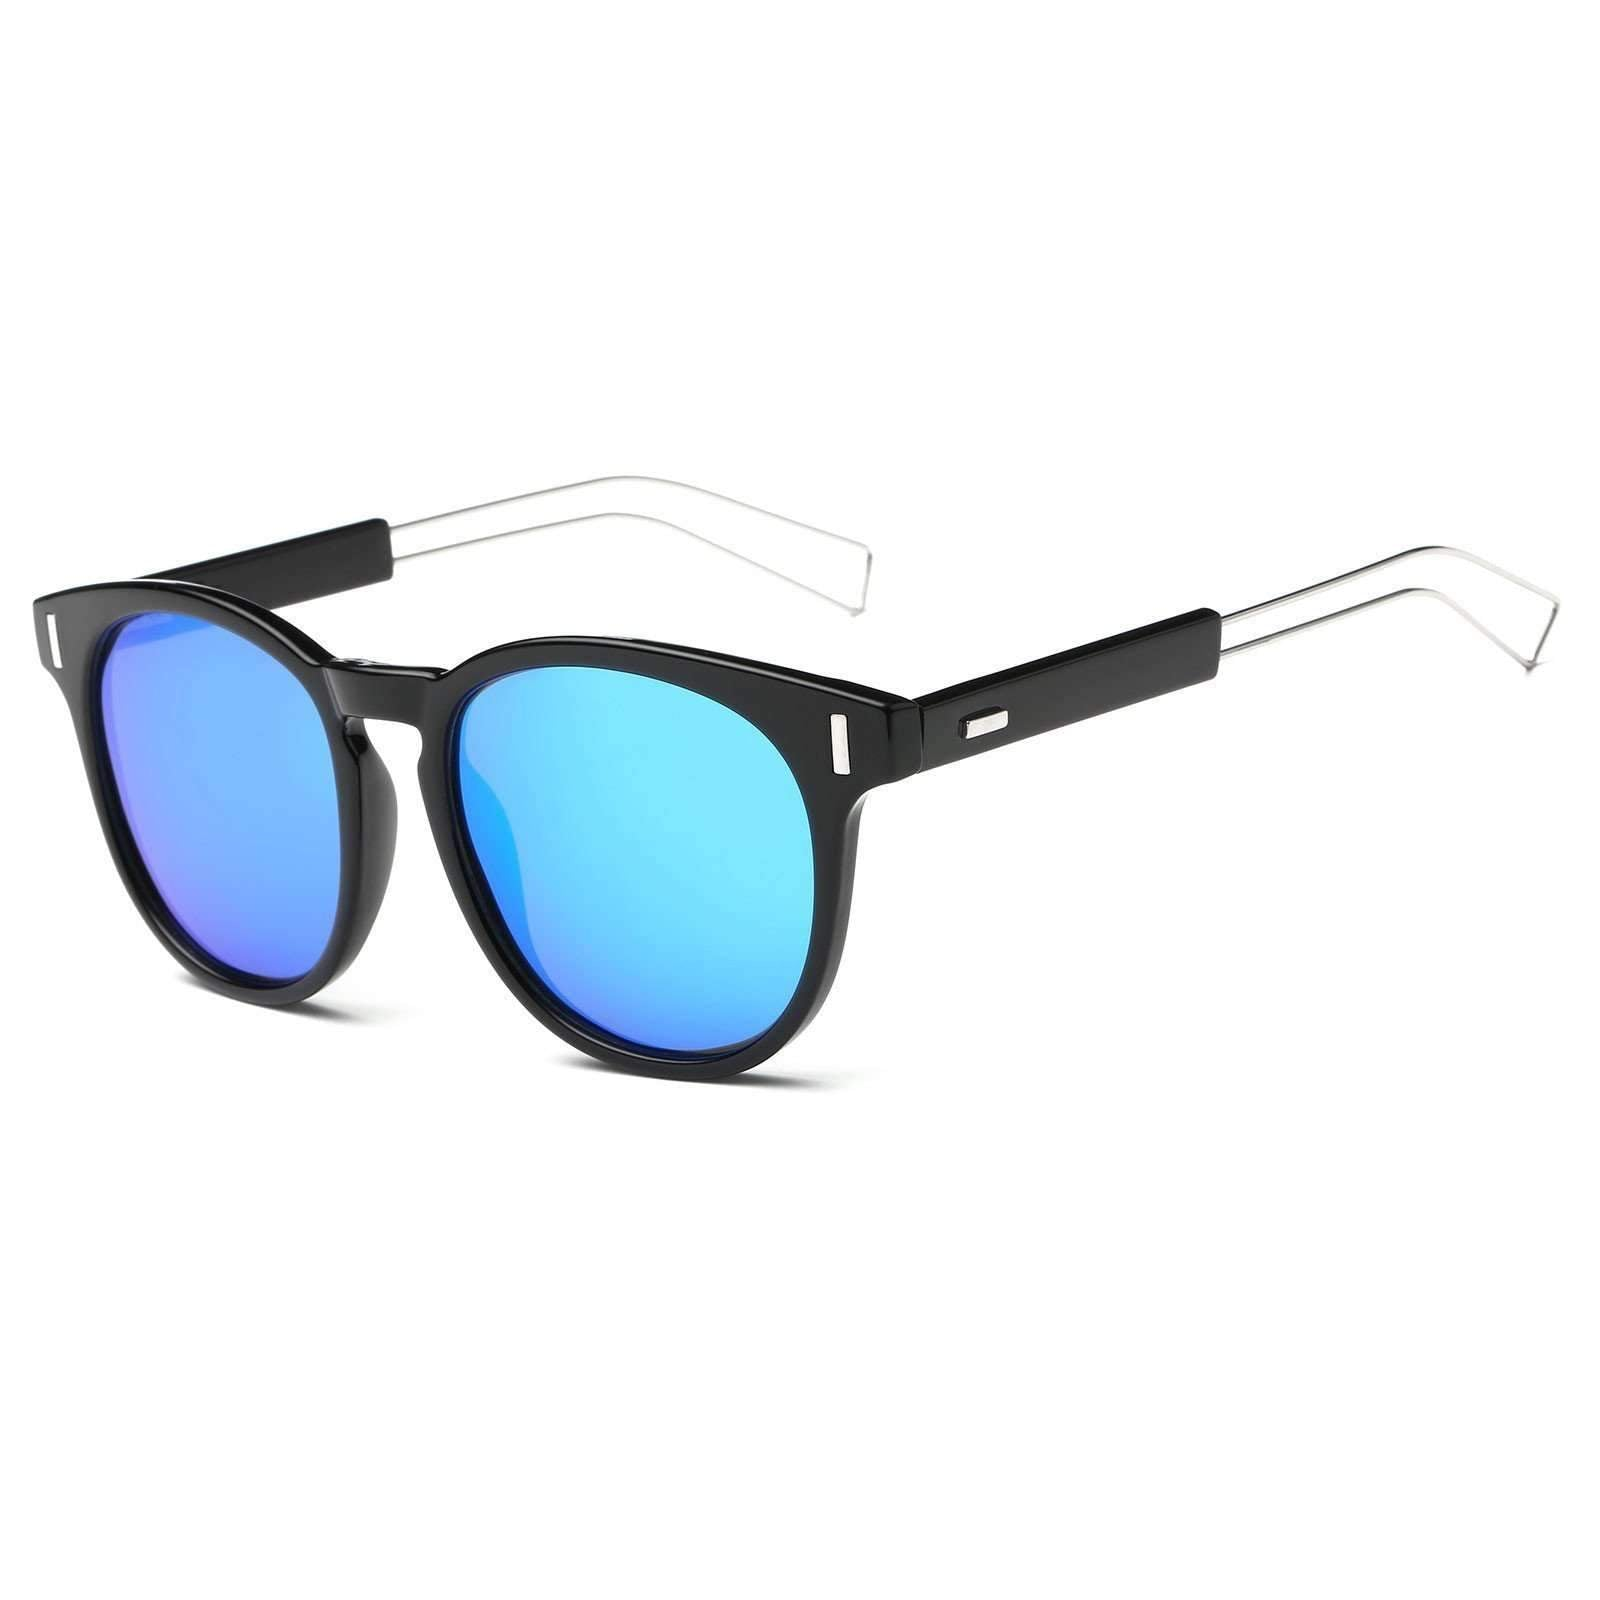 Metal Rim Euro Inspired Mirrored Sunglasses